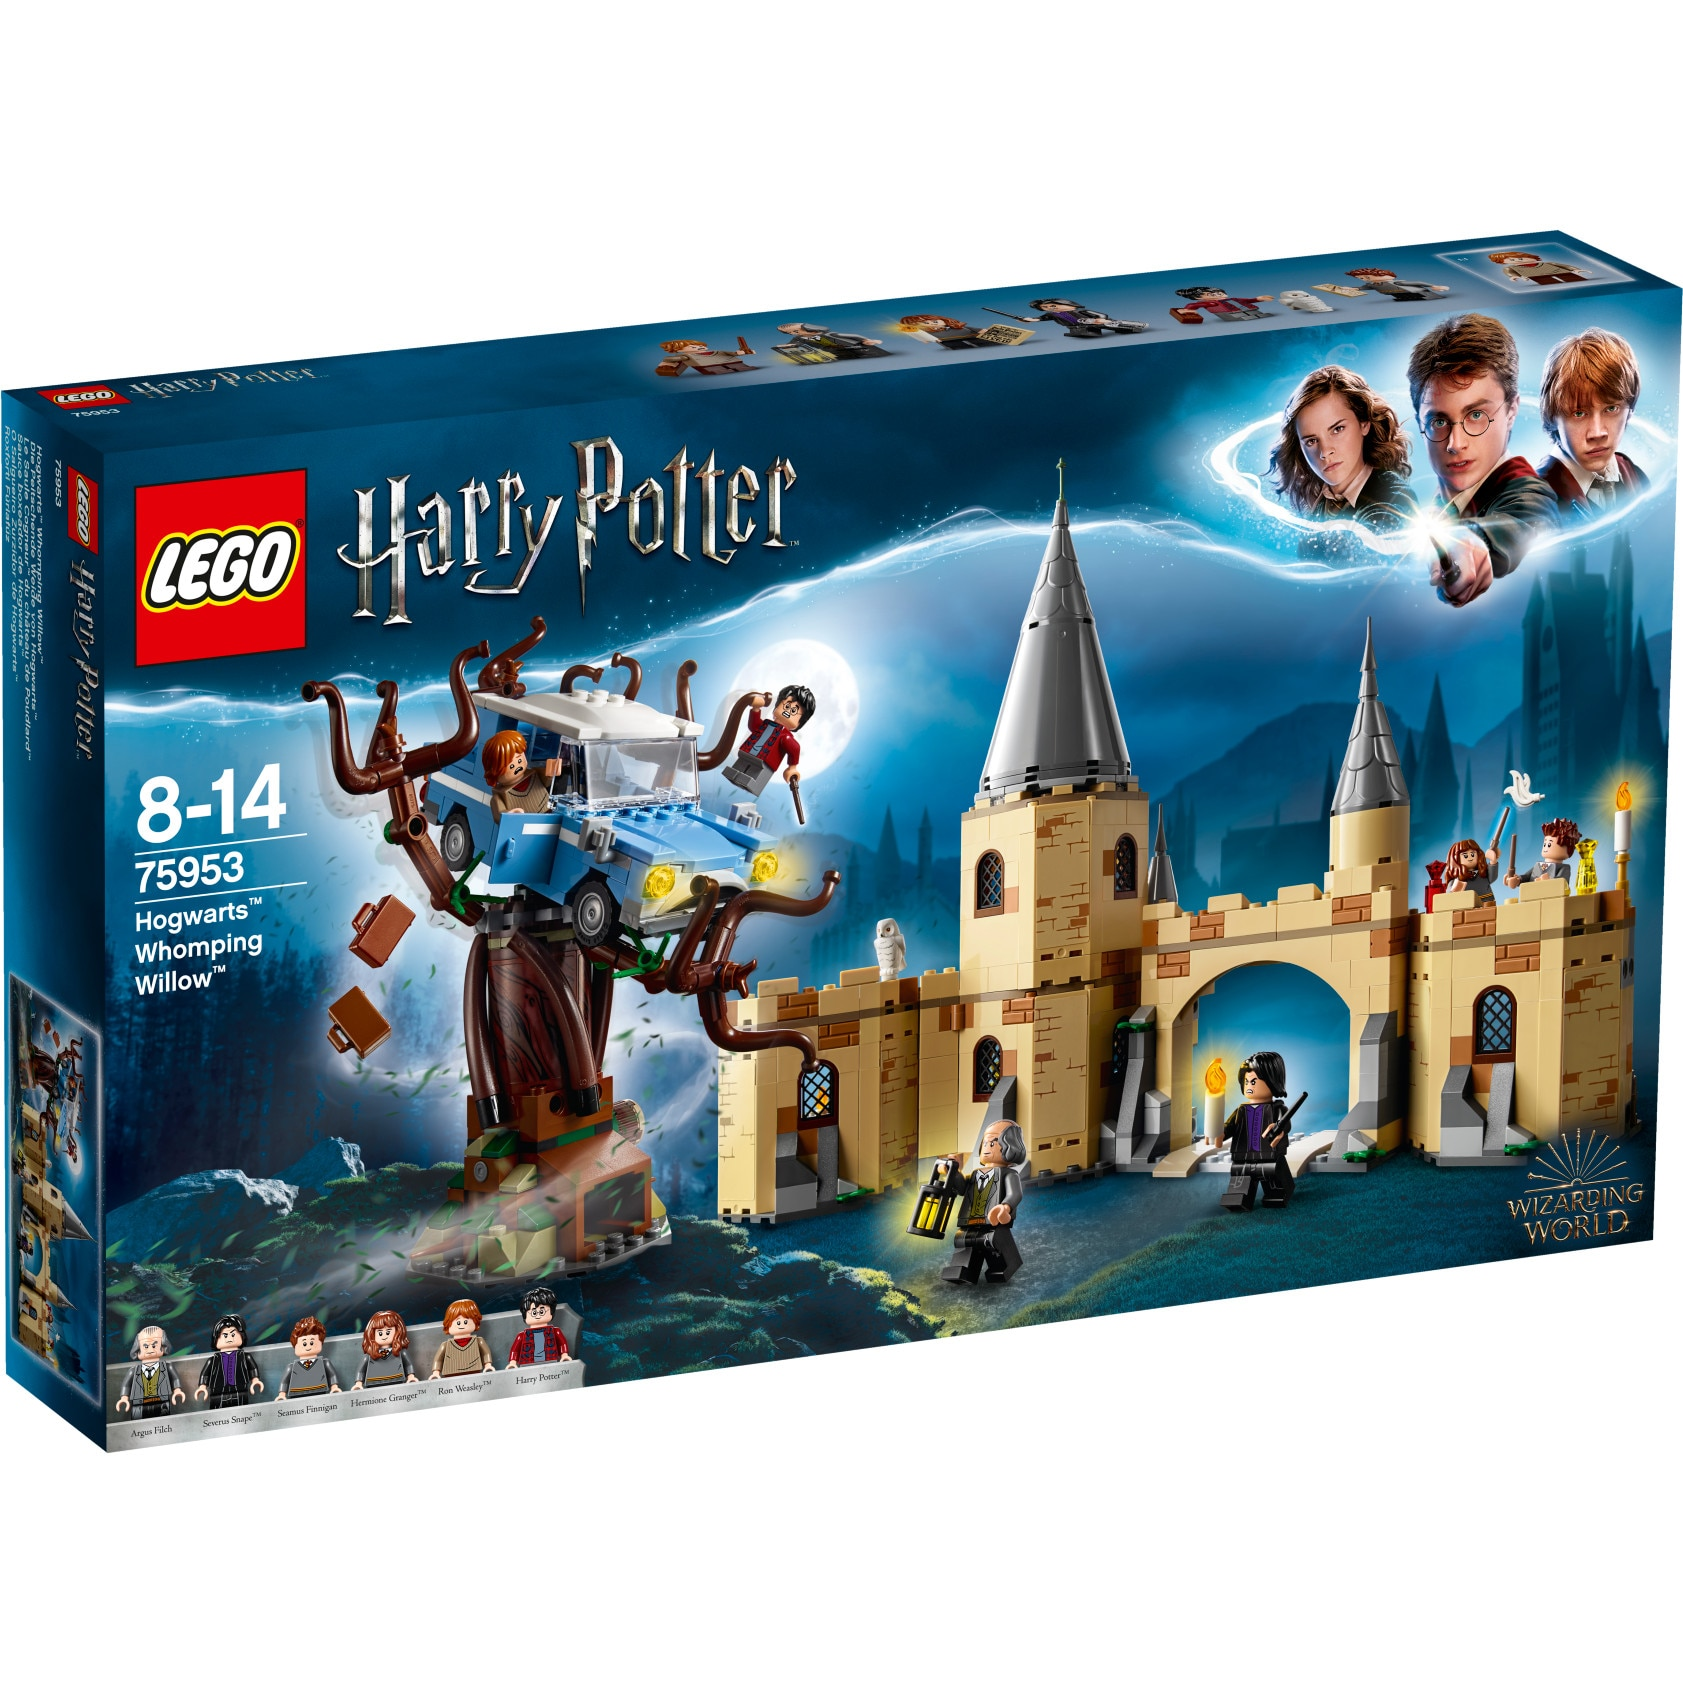 Fotografie LEGO Harry Potter - Hogwarts Whomping Willow 75953, 753 piese